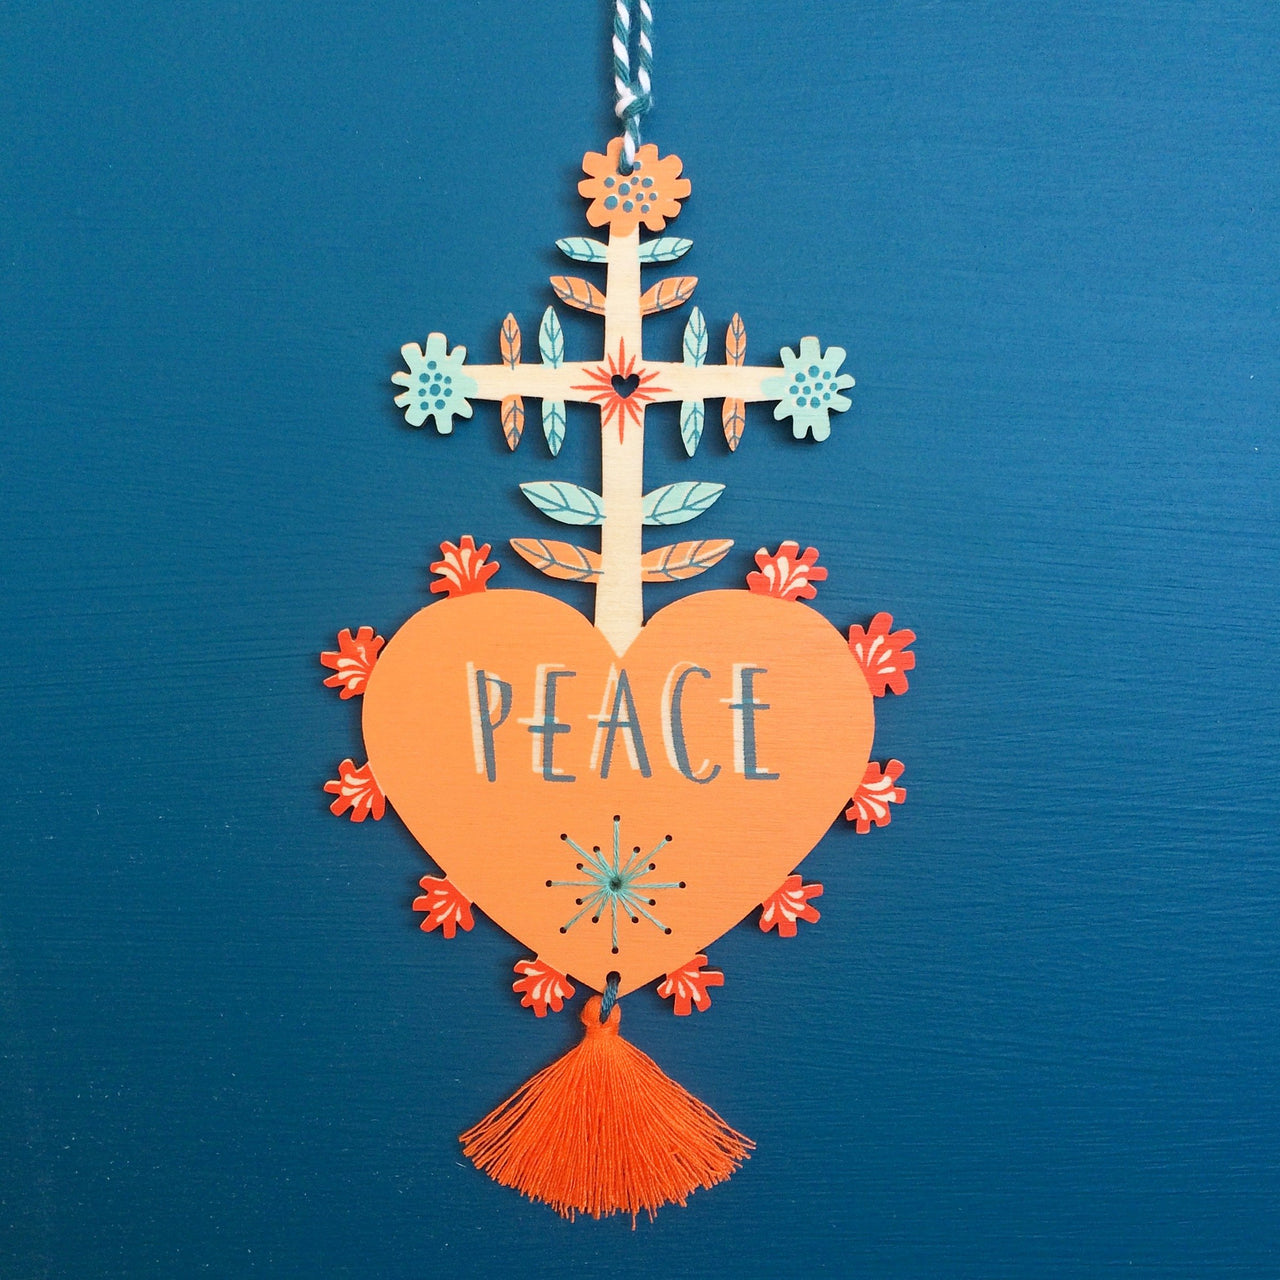 Laser cut and screen printed 'Peace' Milagro charm in apricot by Fiona Biddington aka Paper Argonauts at Soma Gallery